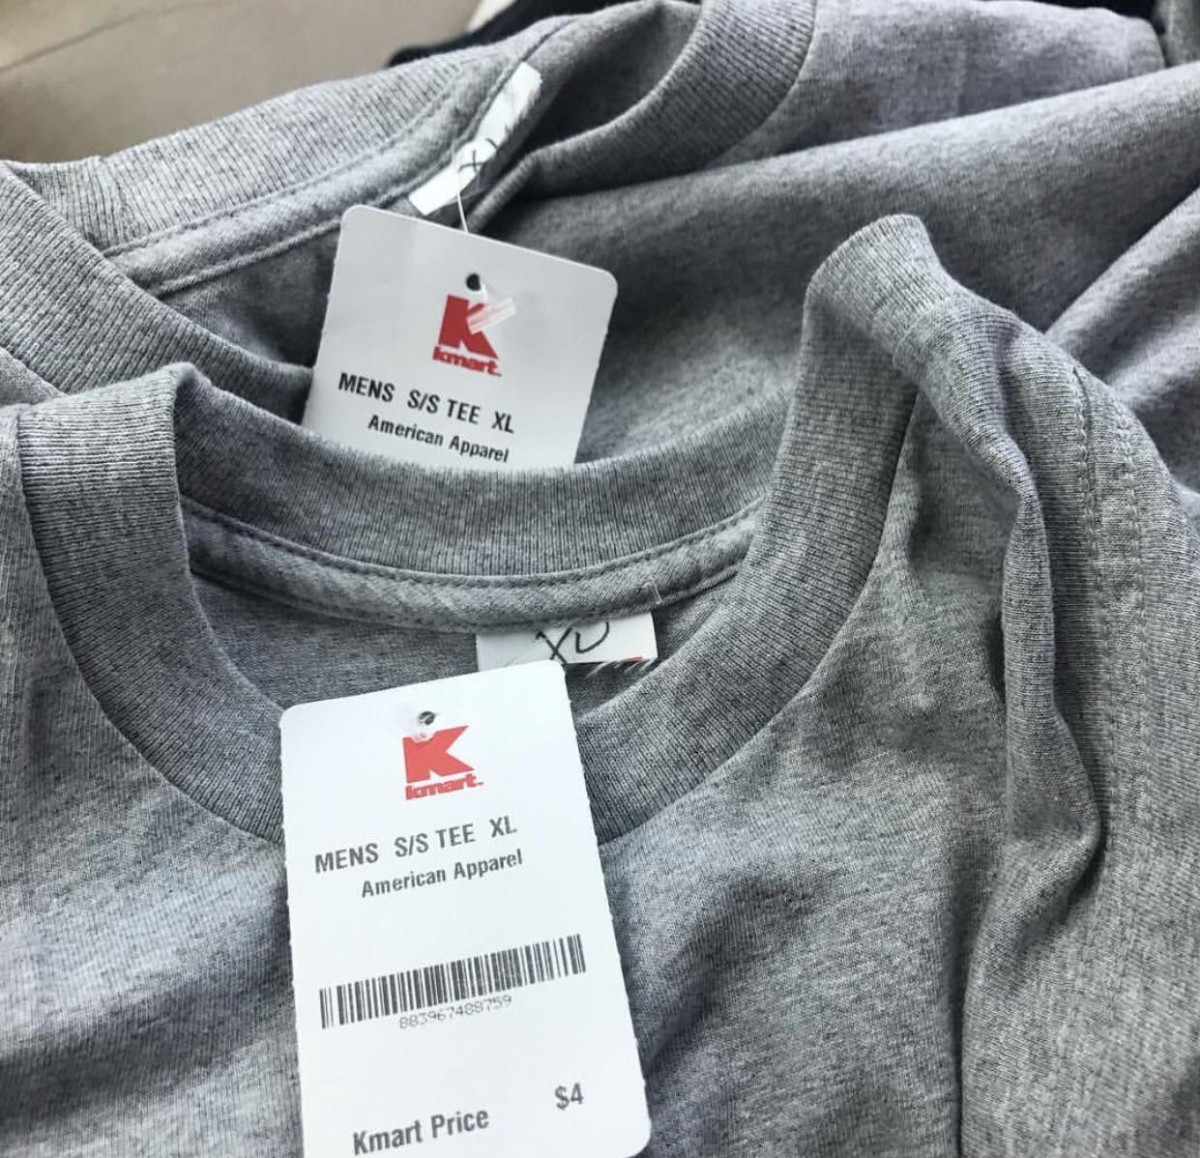 abe9470f Sorry, Hypebeasts, But You Can't Cop Those $4 Supreme Shirts at Kmart  Anymore | Complex